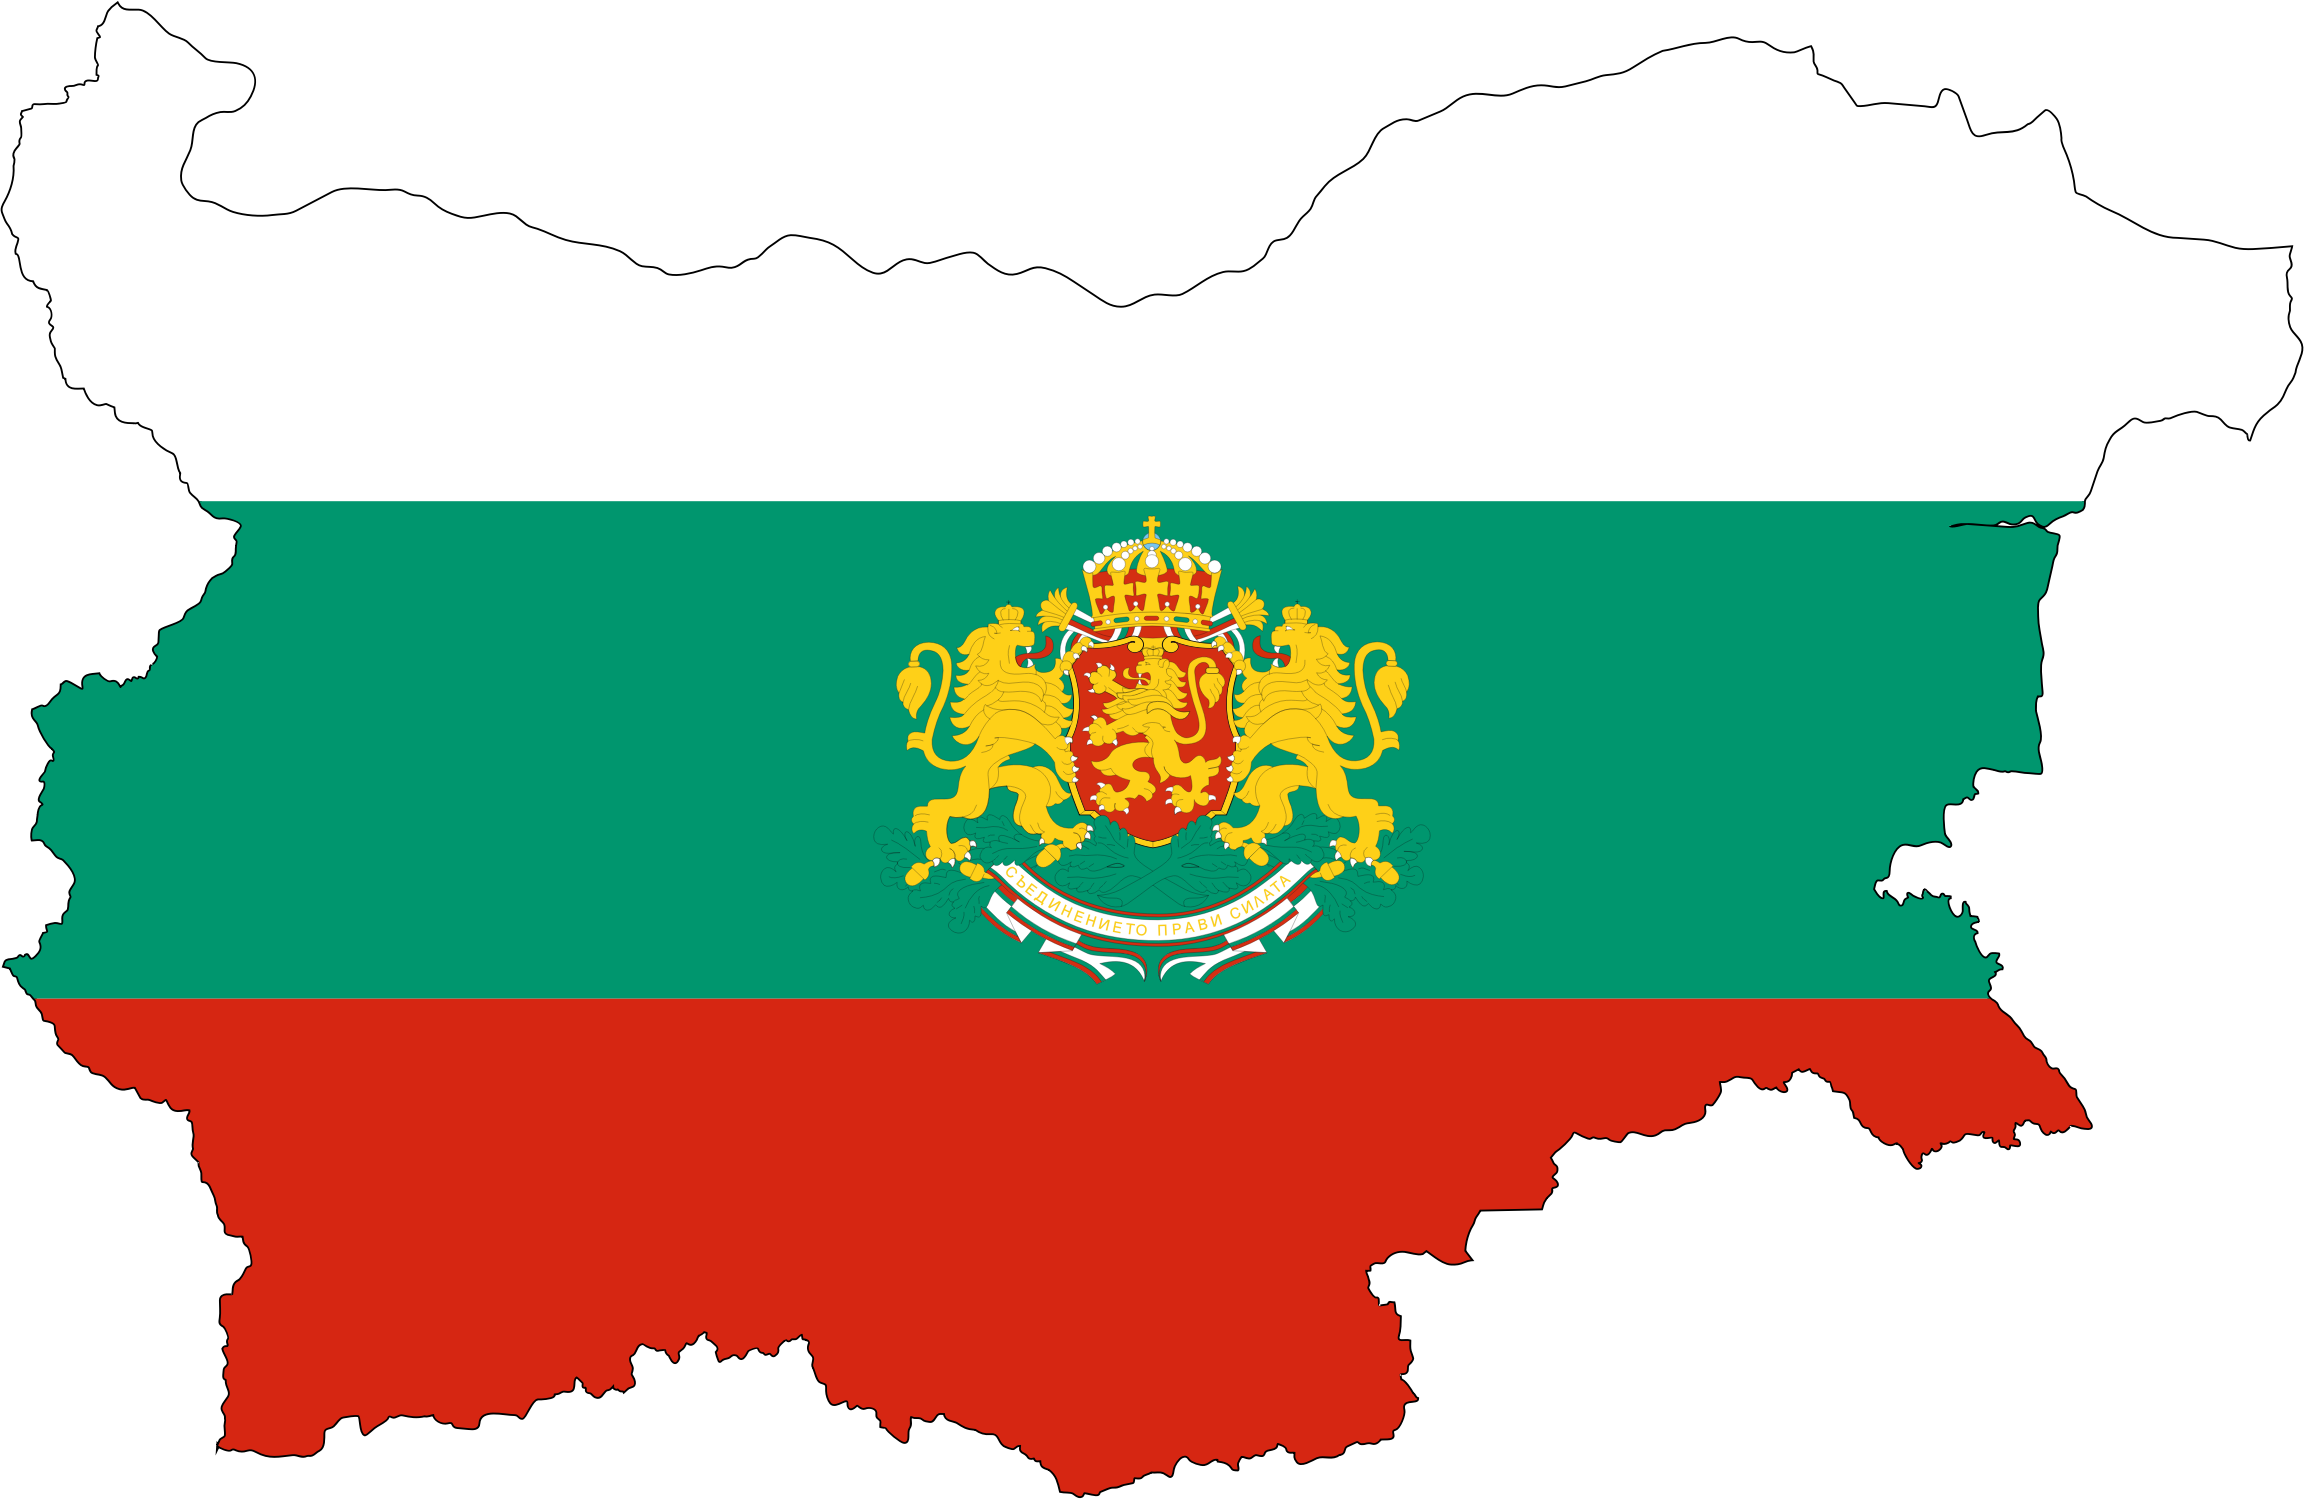 Bulgaria Map Flag With Stroke And Coat Of Arms by GDJ